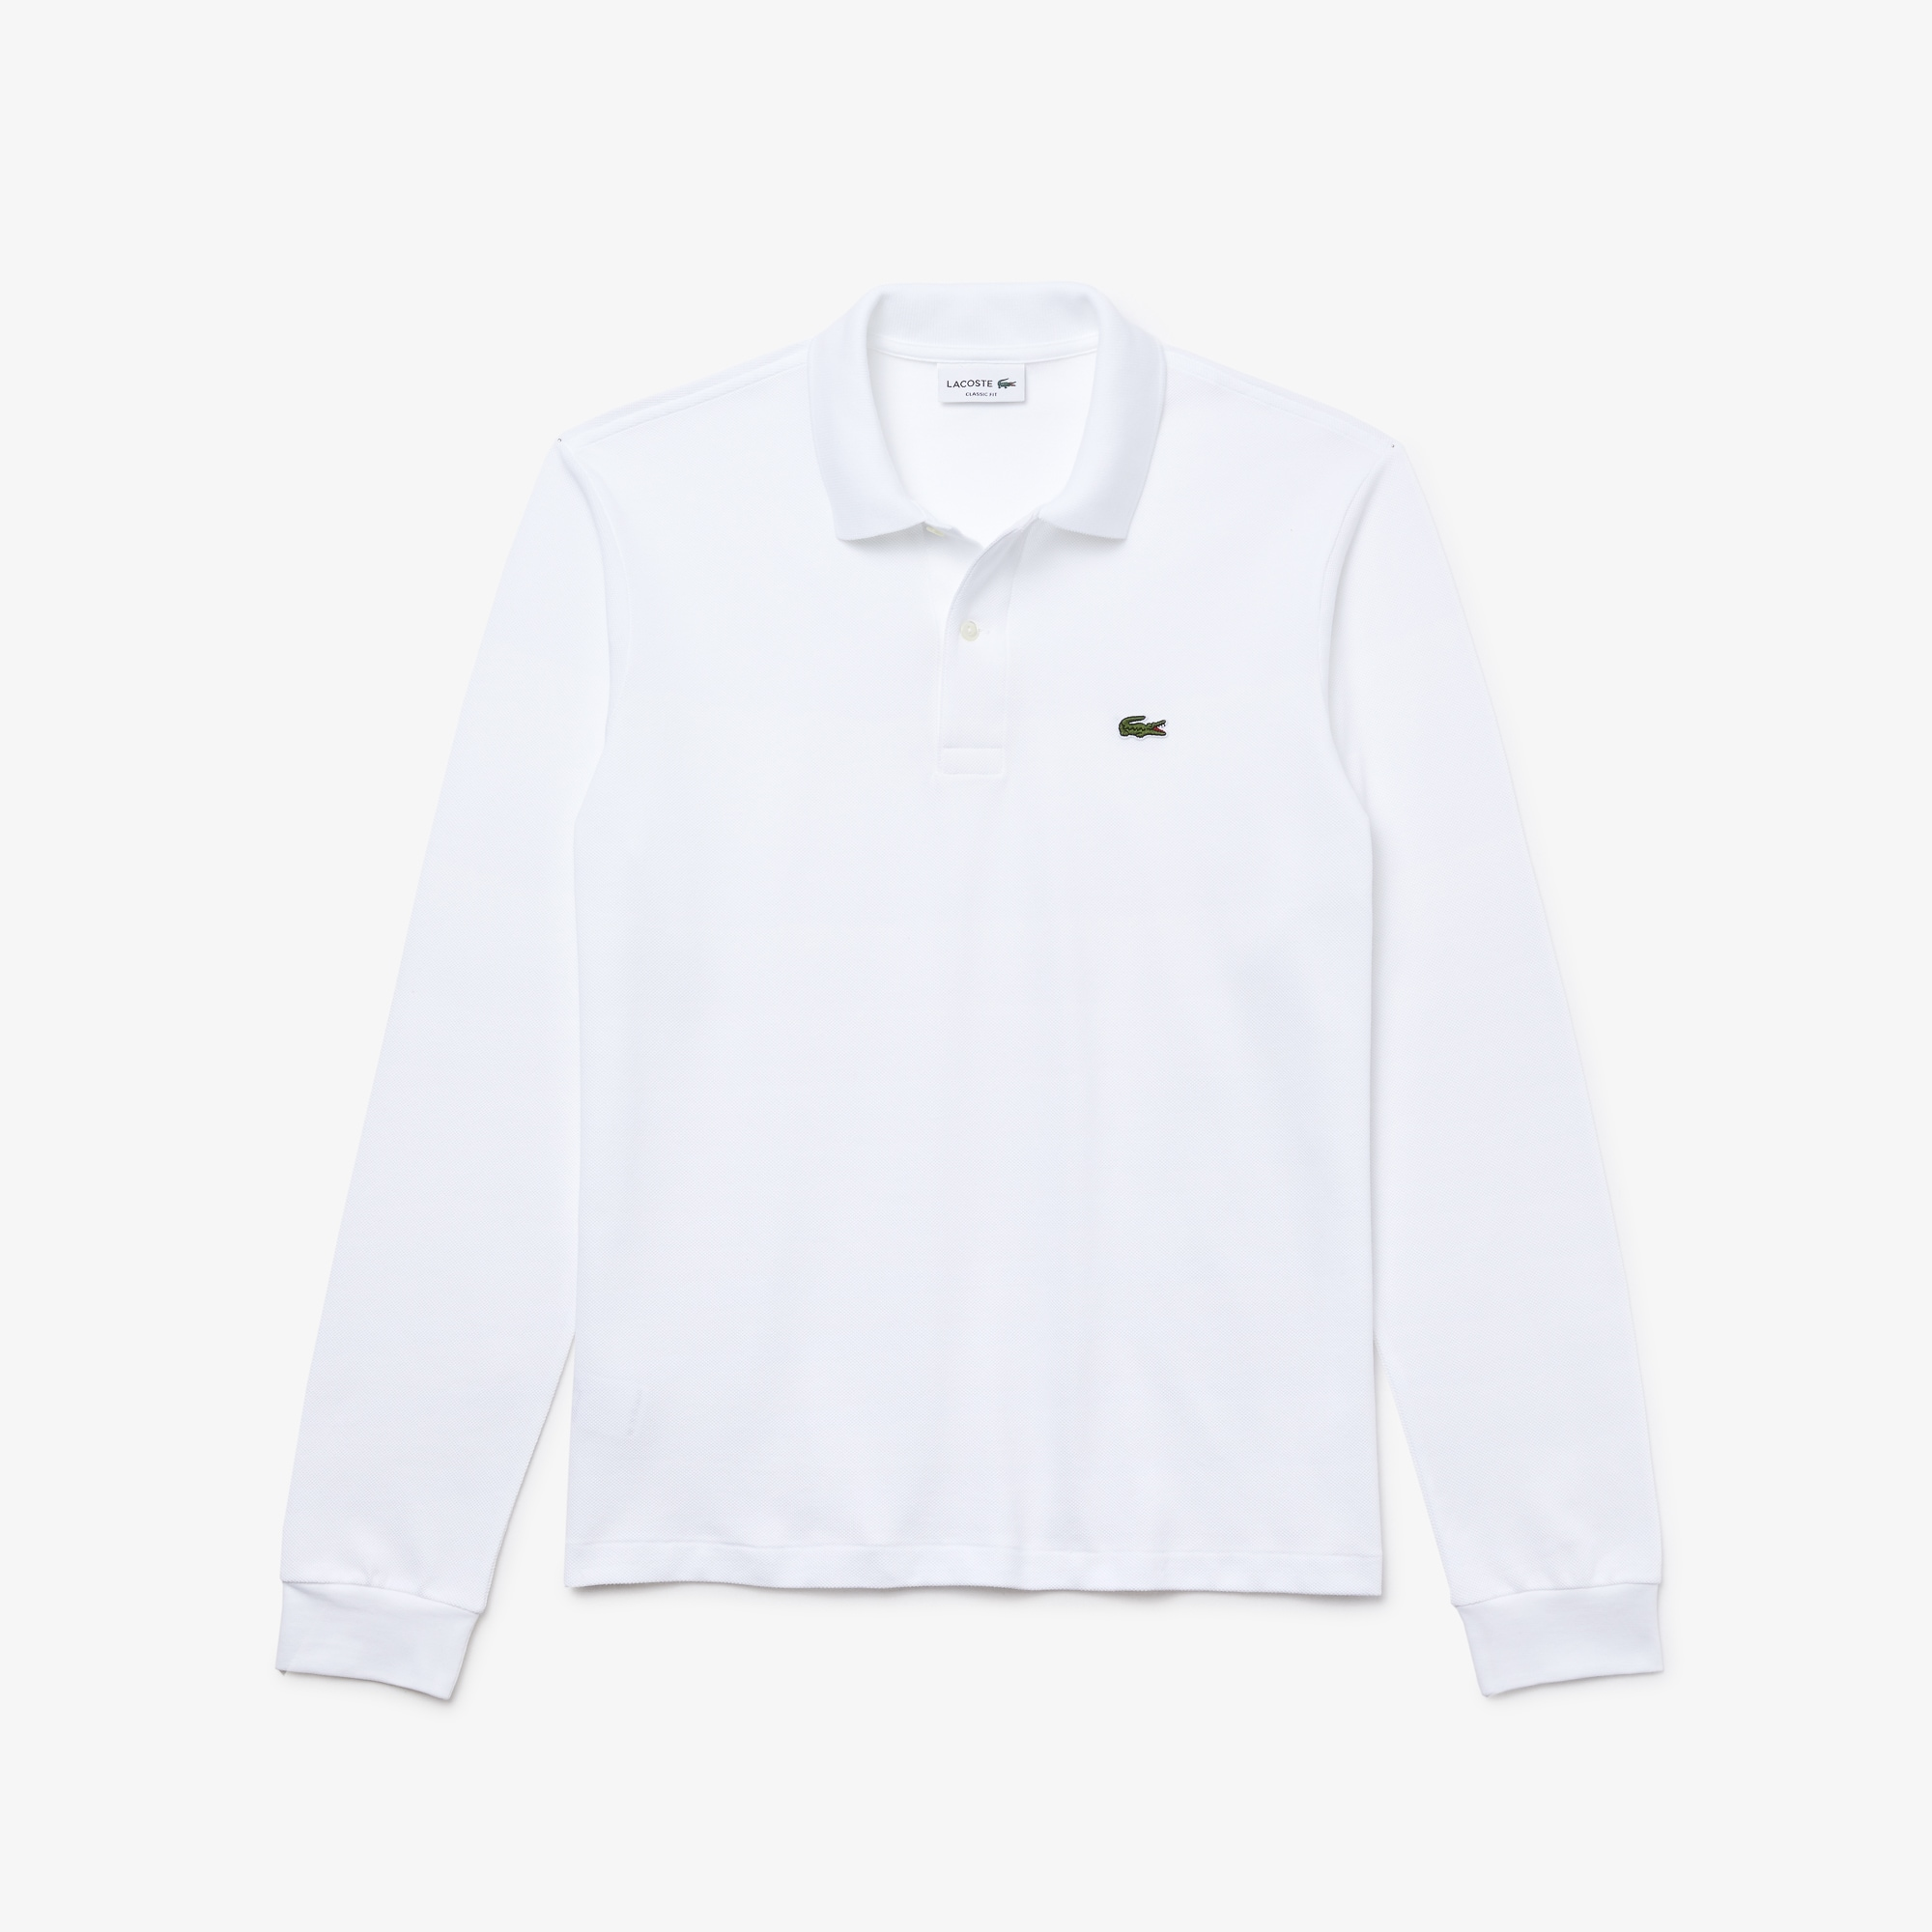 1d426d06 Long-sleeve Lacoste Classic Fit L.12.12 Polo Shirt | LACOSTE